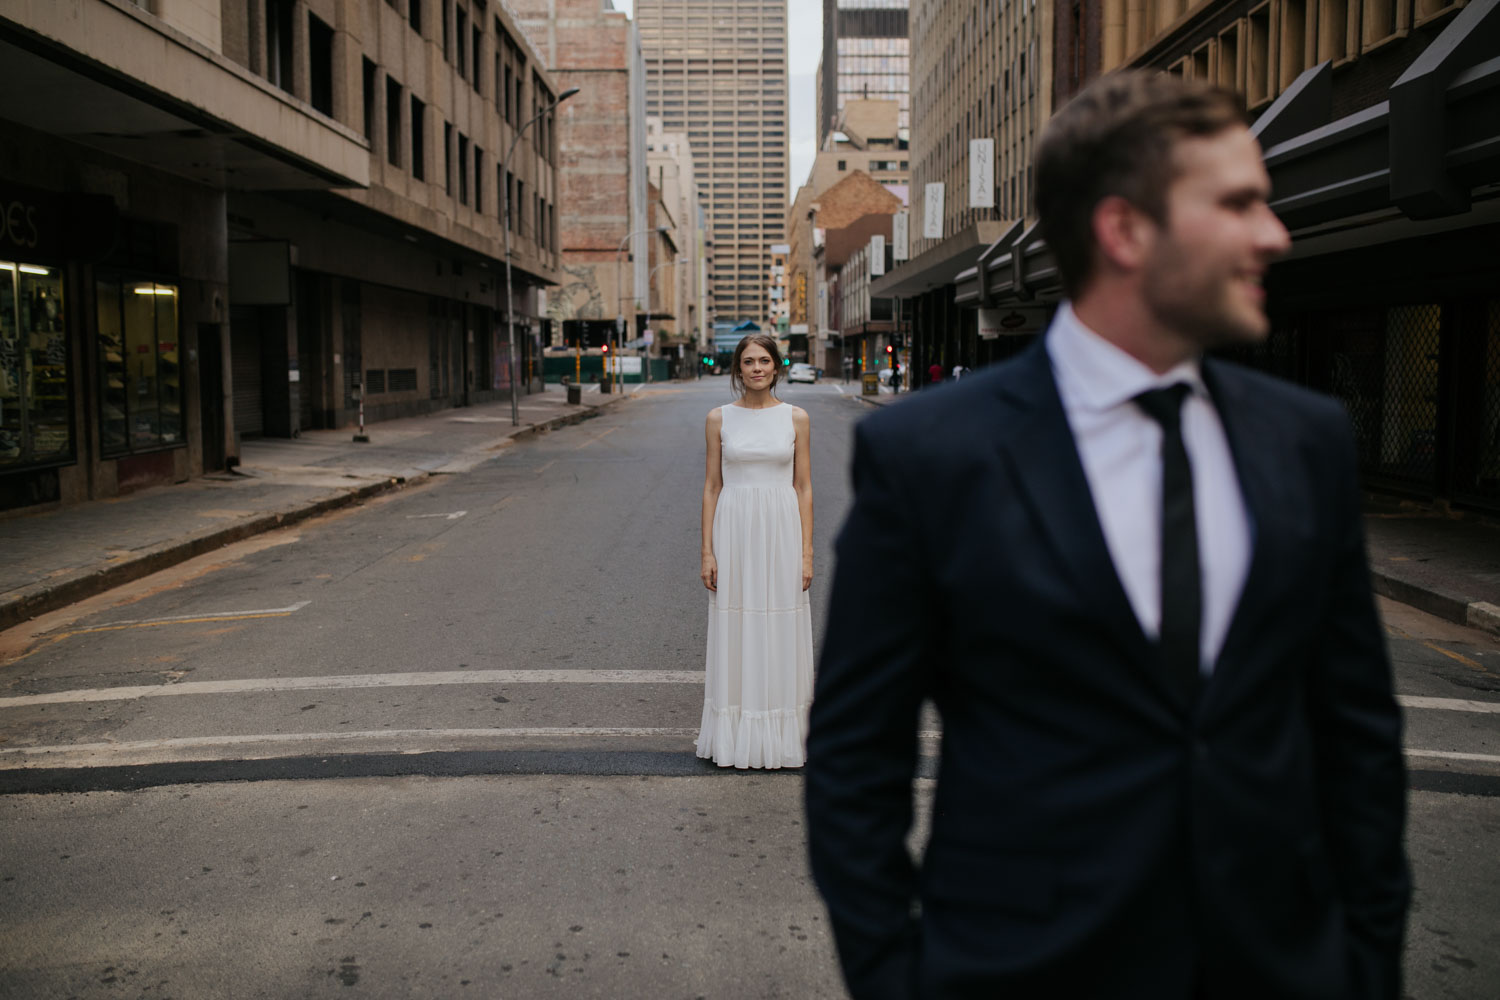 Photo Of Bride In Focus Looking At Her New Husband